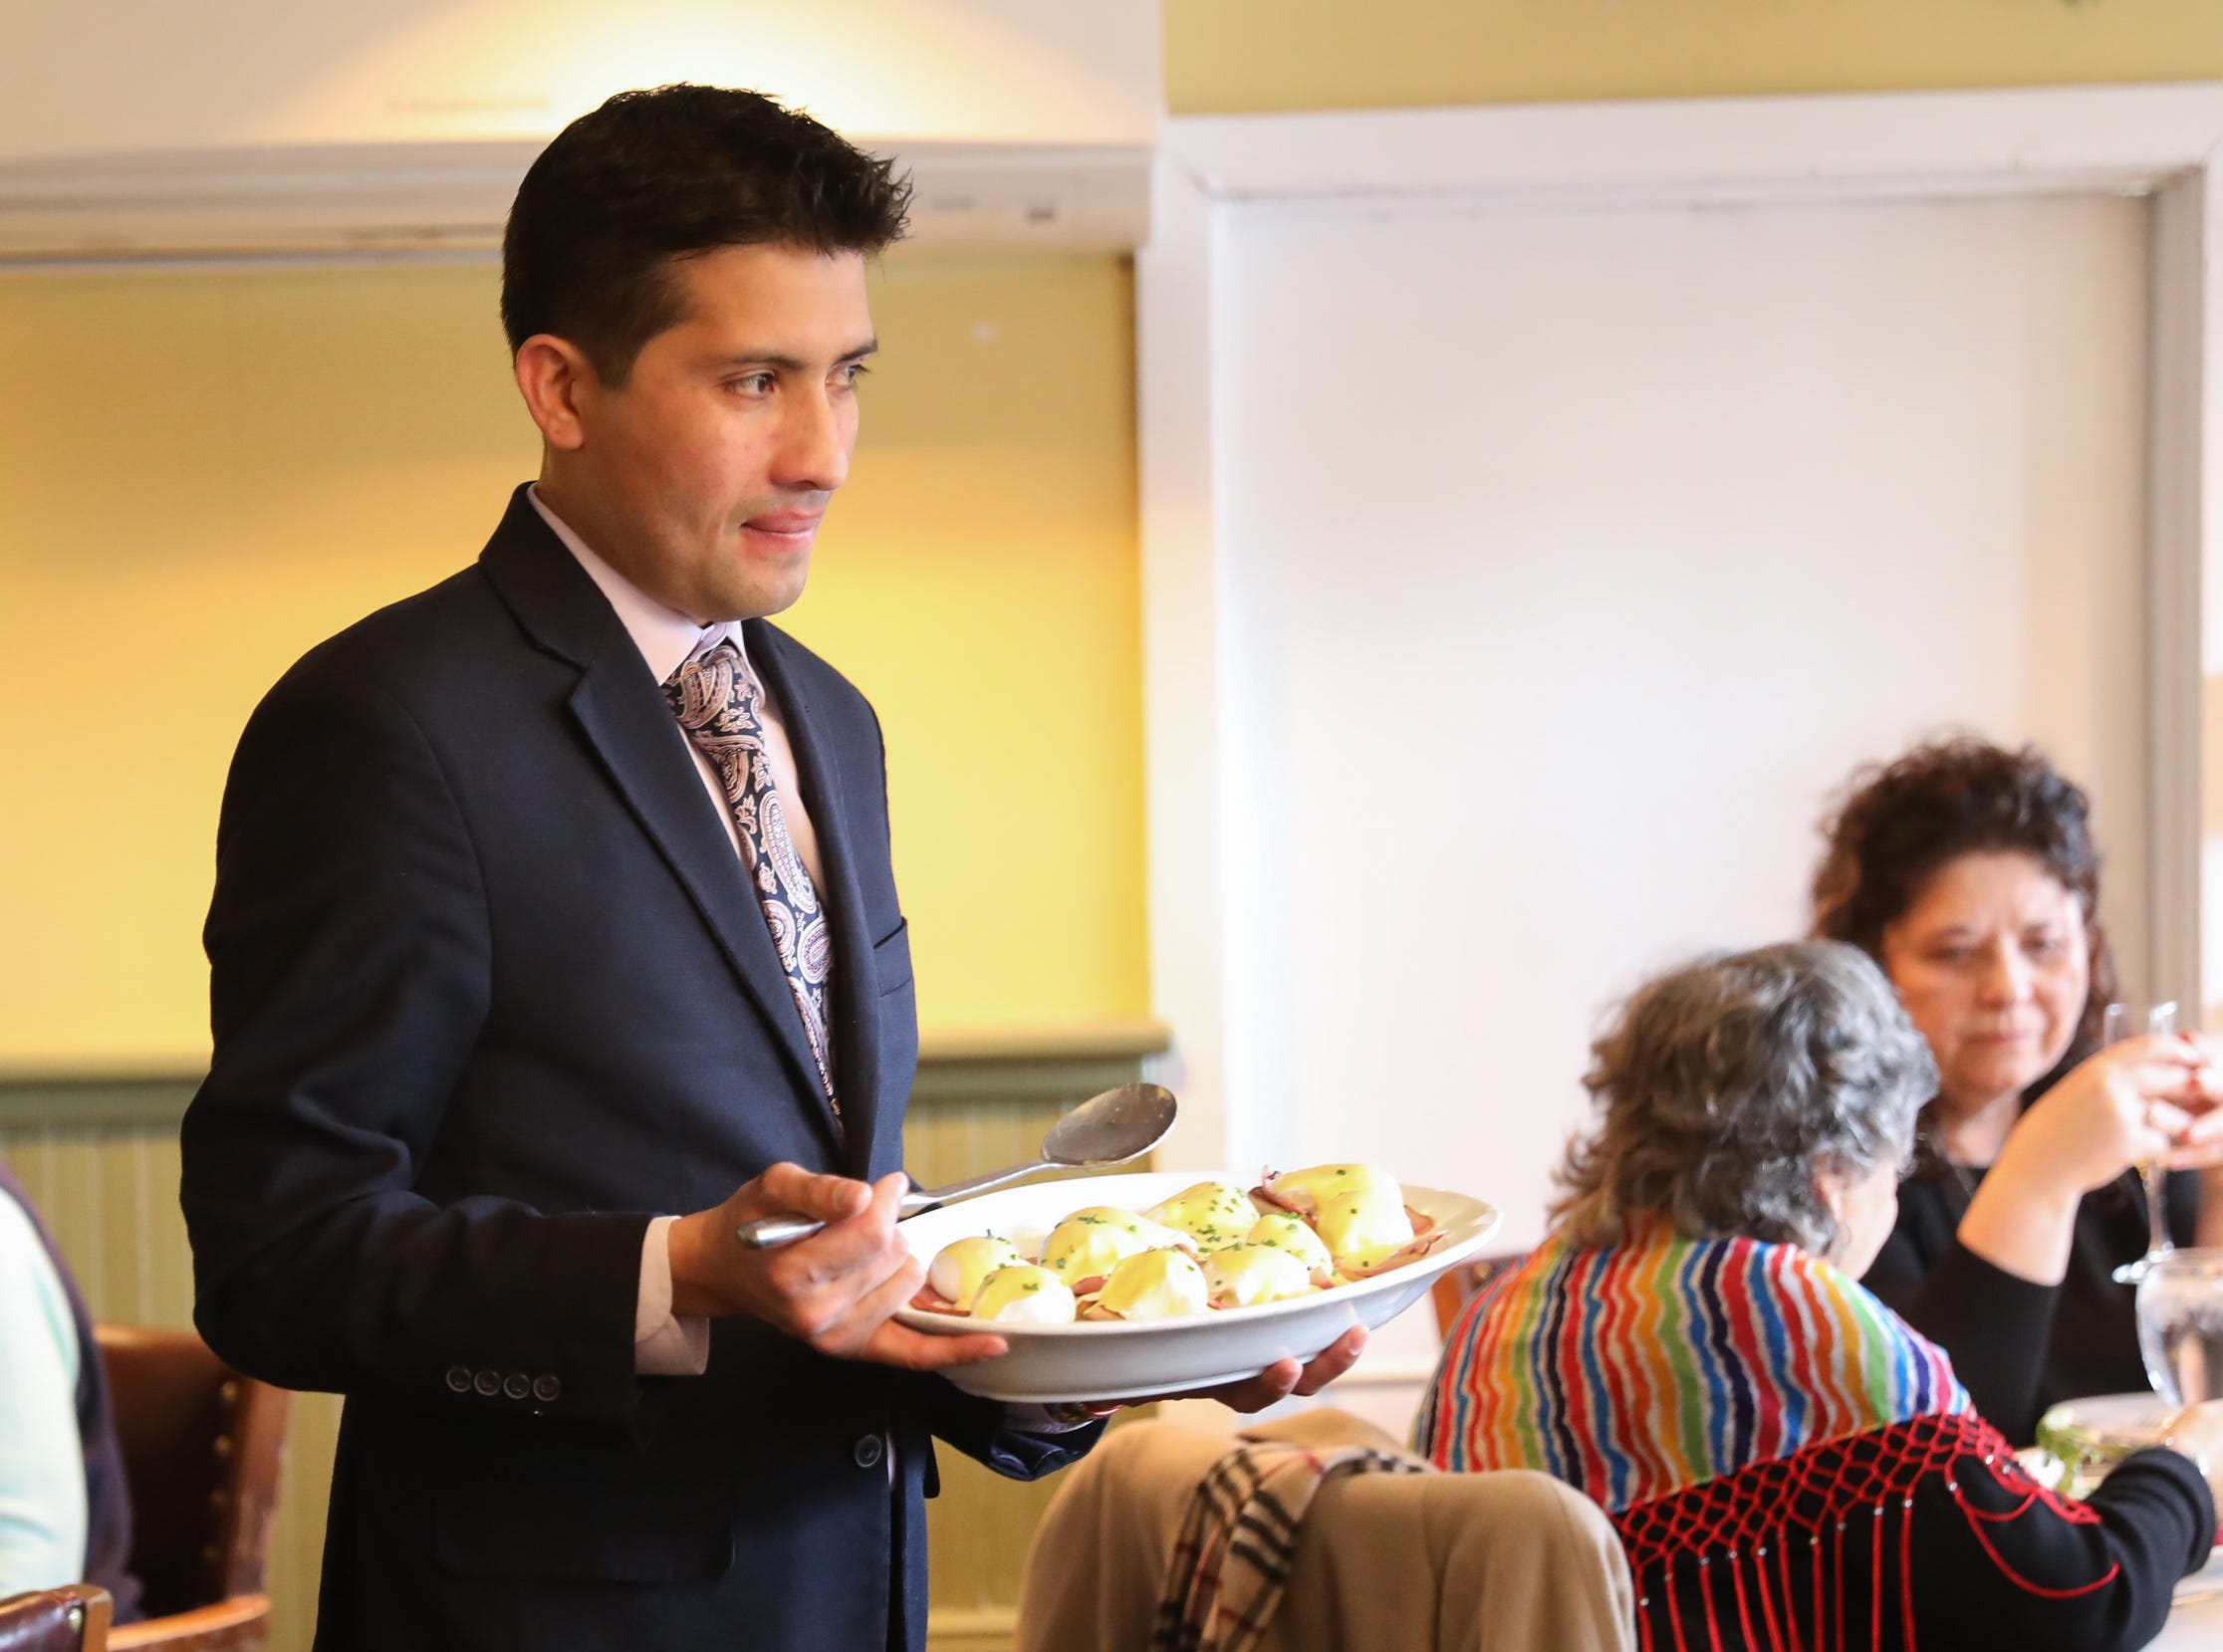 A Maitre D serves Eggs Benedict during Sunday brunch at Restaurant X in Congers on Sunday, January 6, 2019.